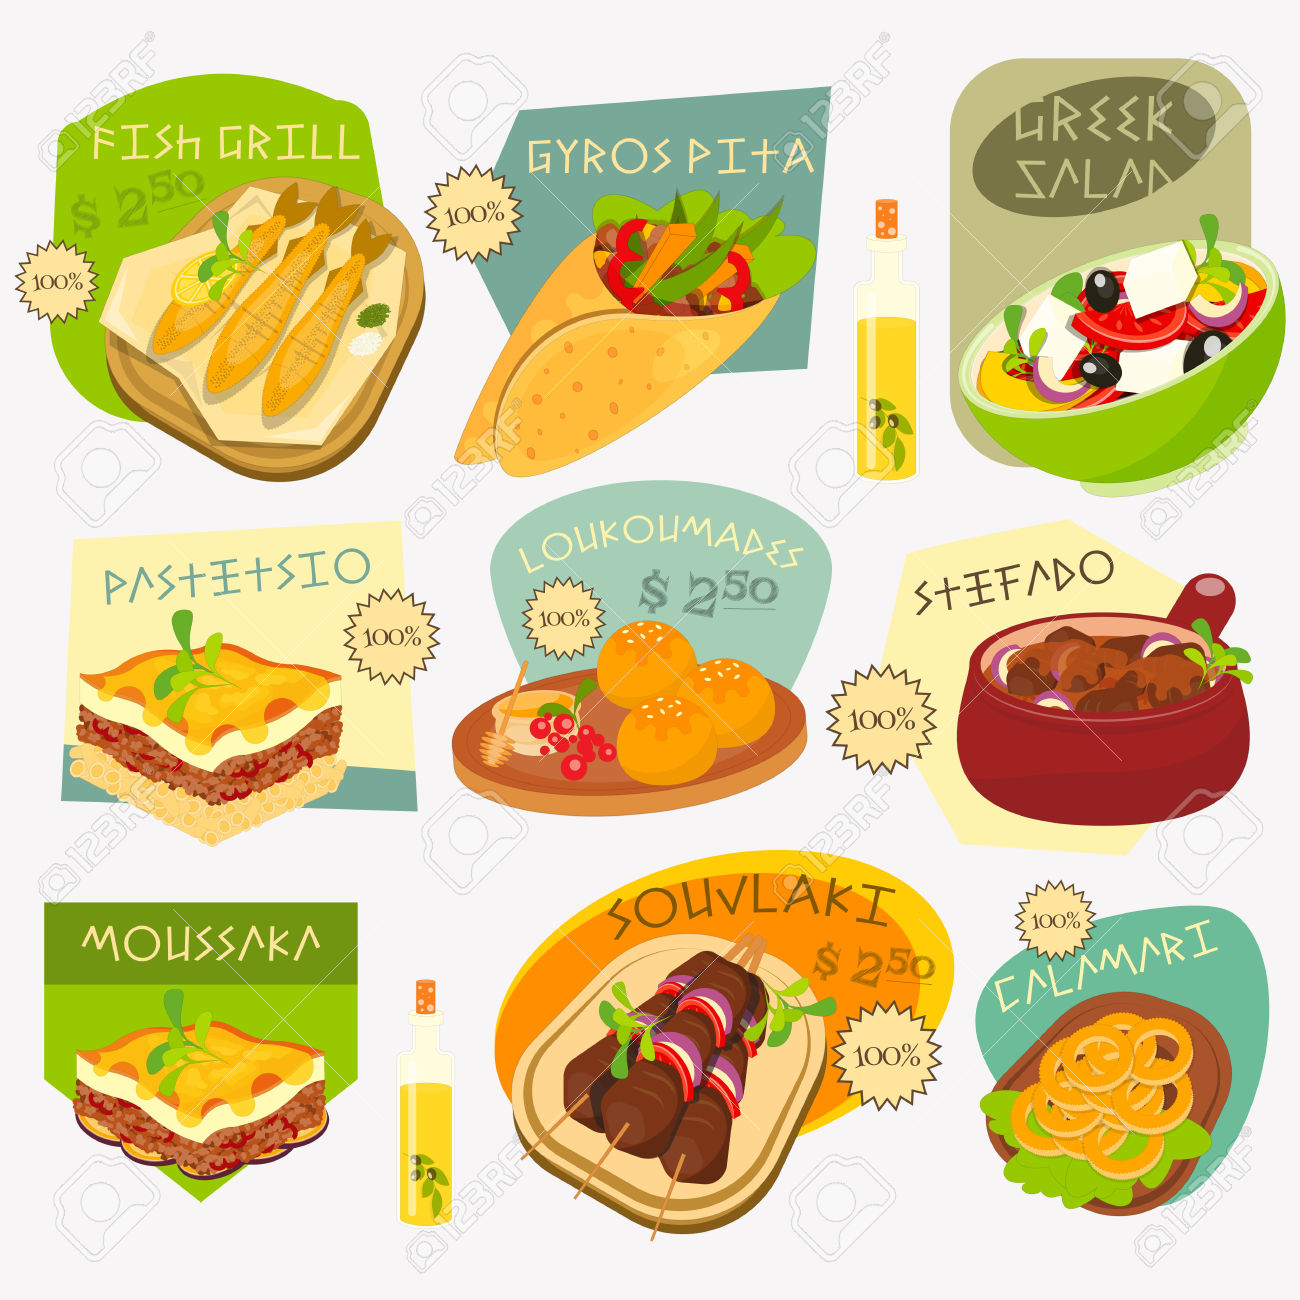 Traditional food clipart picture free download Traditional food clipart - ClipartFest picture free download